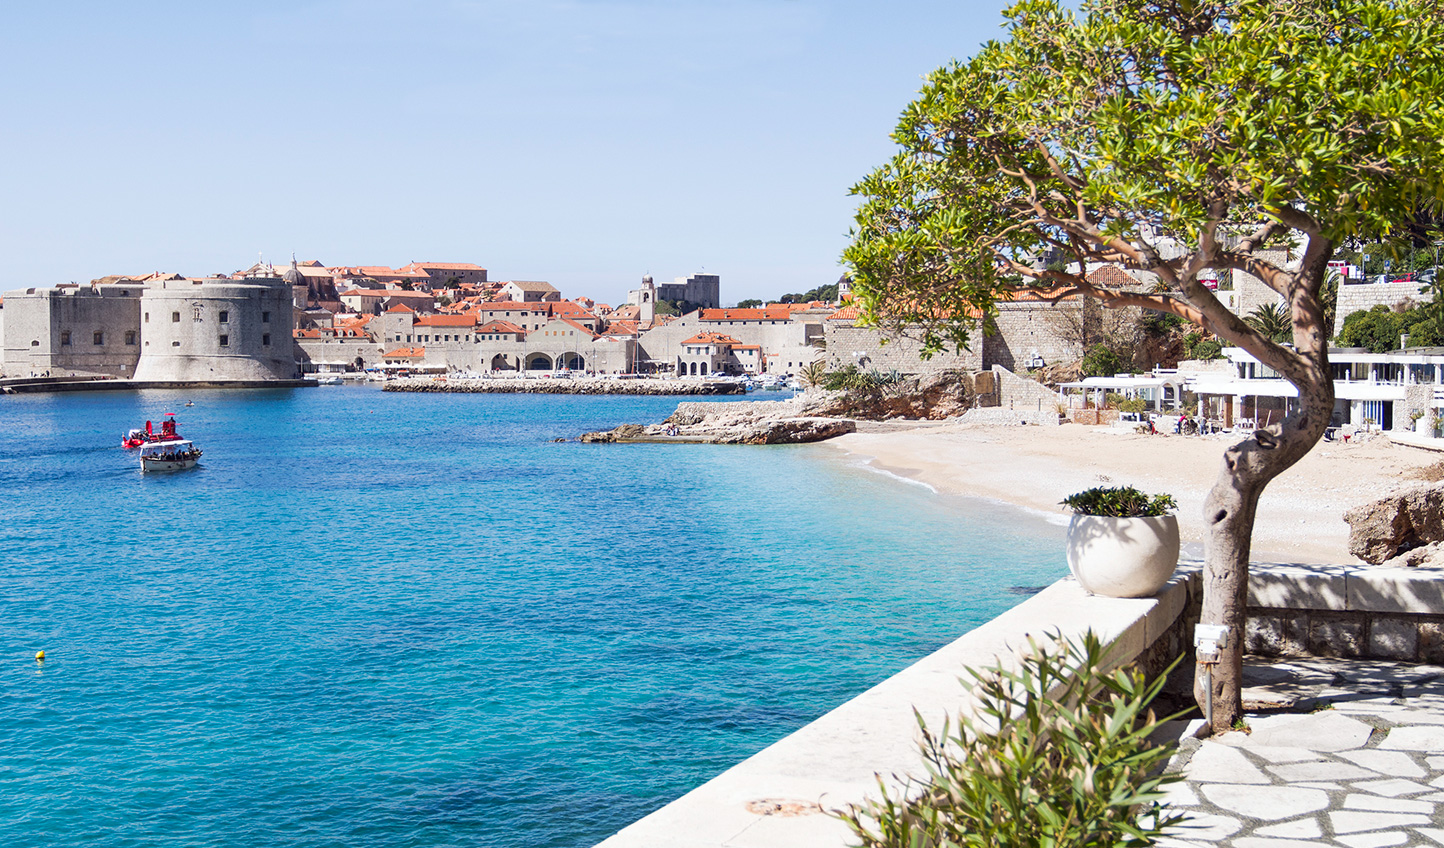 Caught between the Adriatic and Old Town Dubrovnik, Hotel Excelsior boasts the perfect location